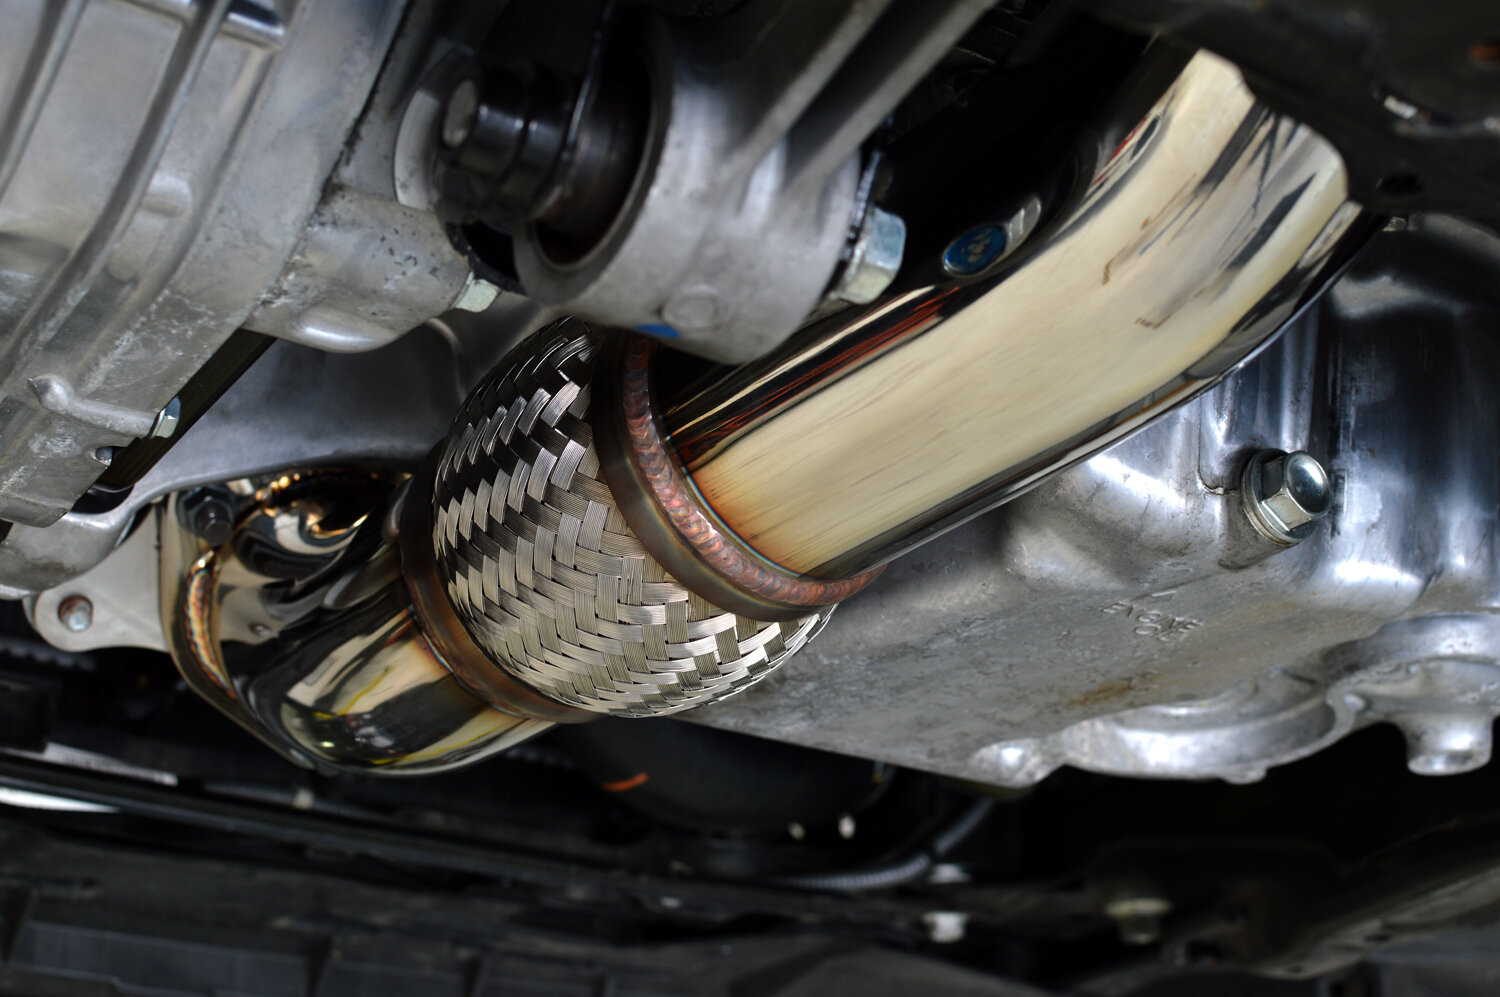 2019-civic-type-r-3-inch-exhaust.JPG